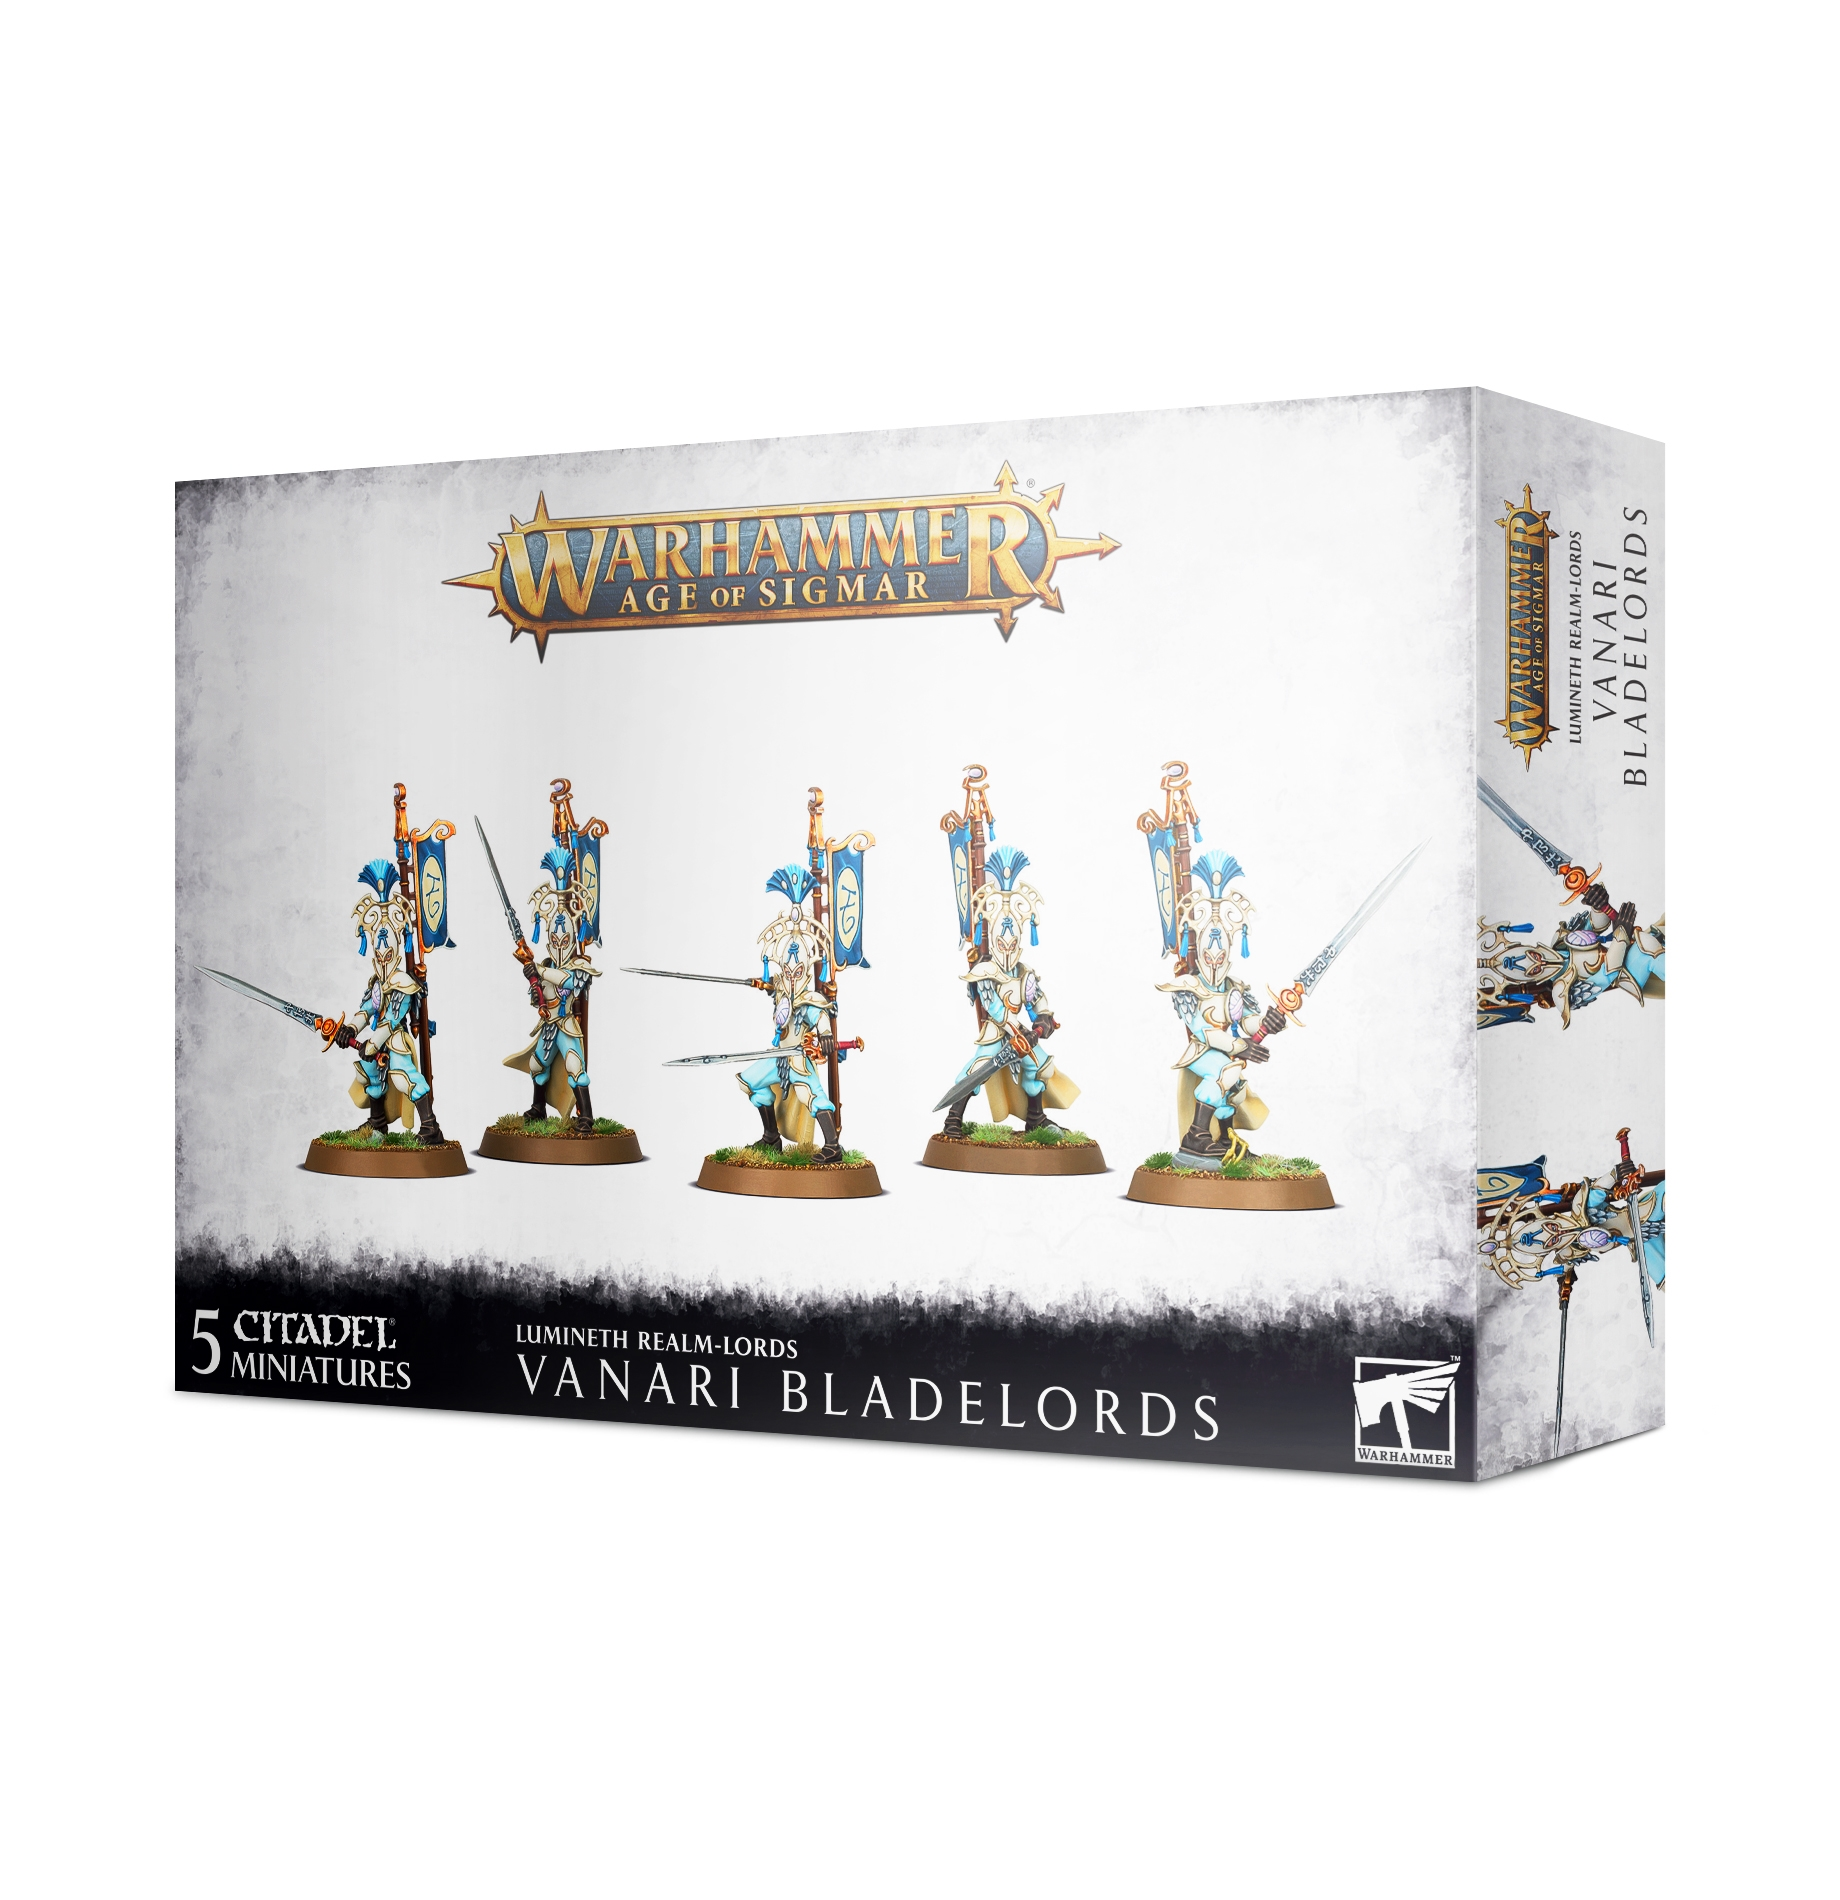 Warhammer Age of Sigmar: Lumineth Realm-lords: Vanari Bladelords